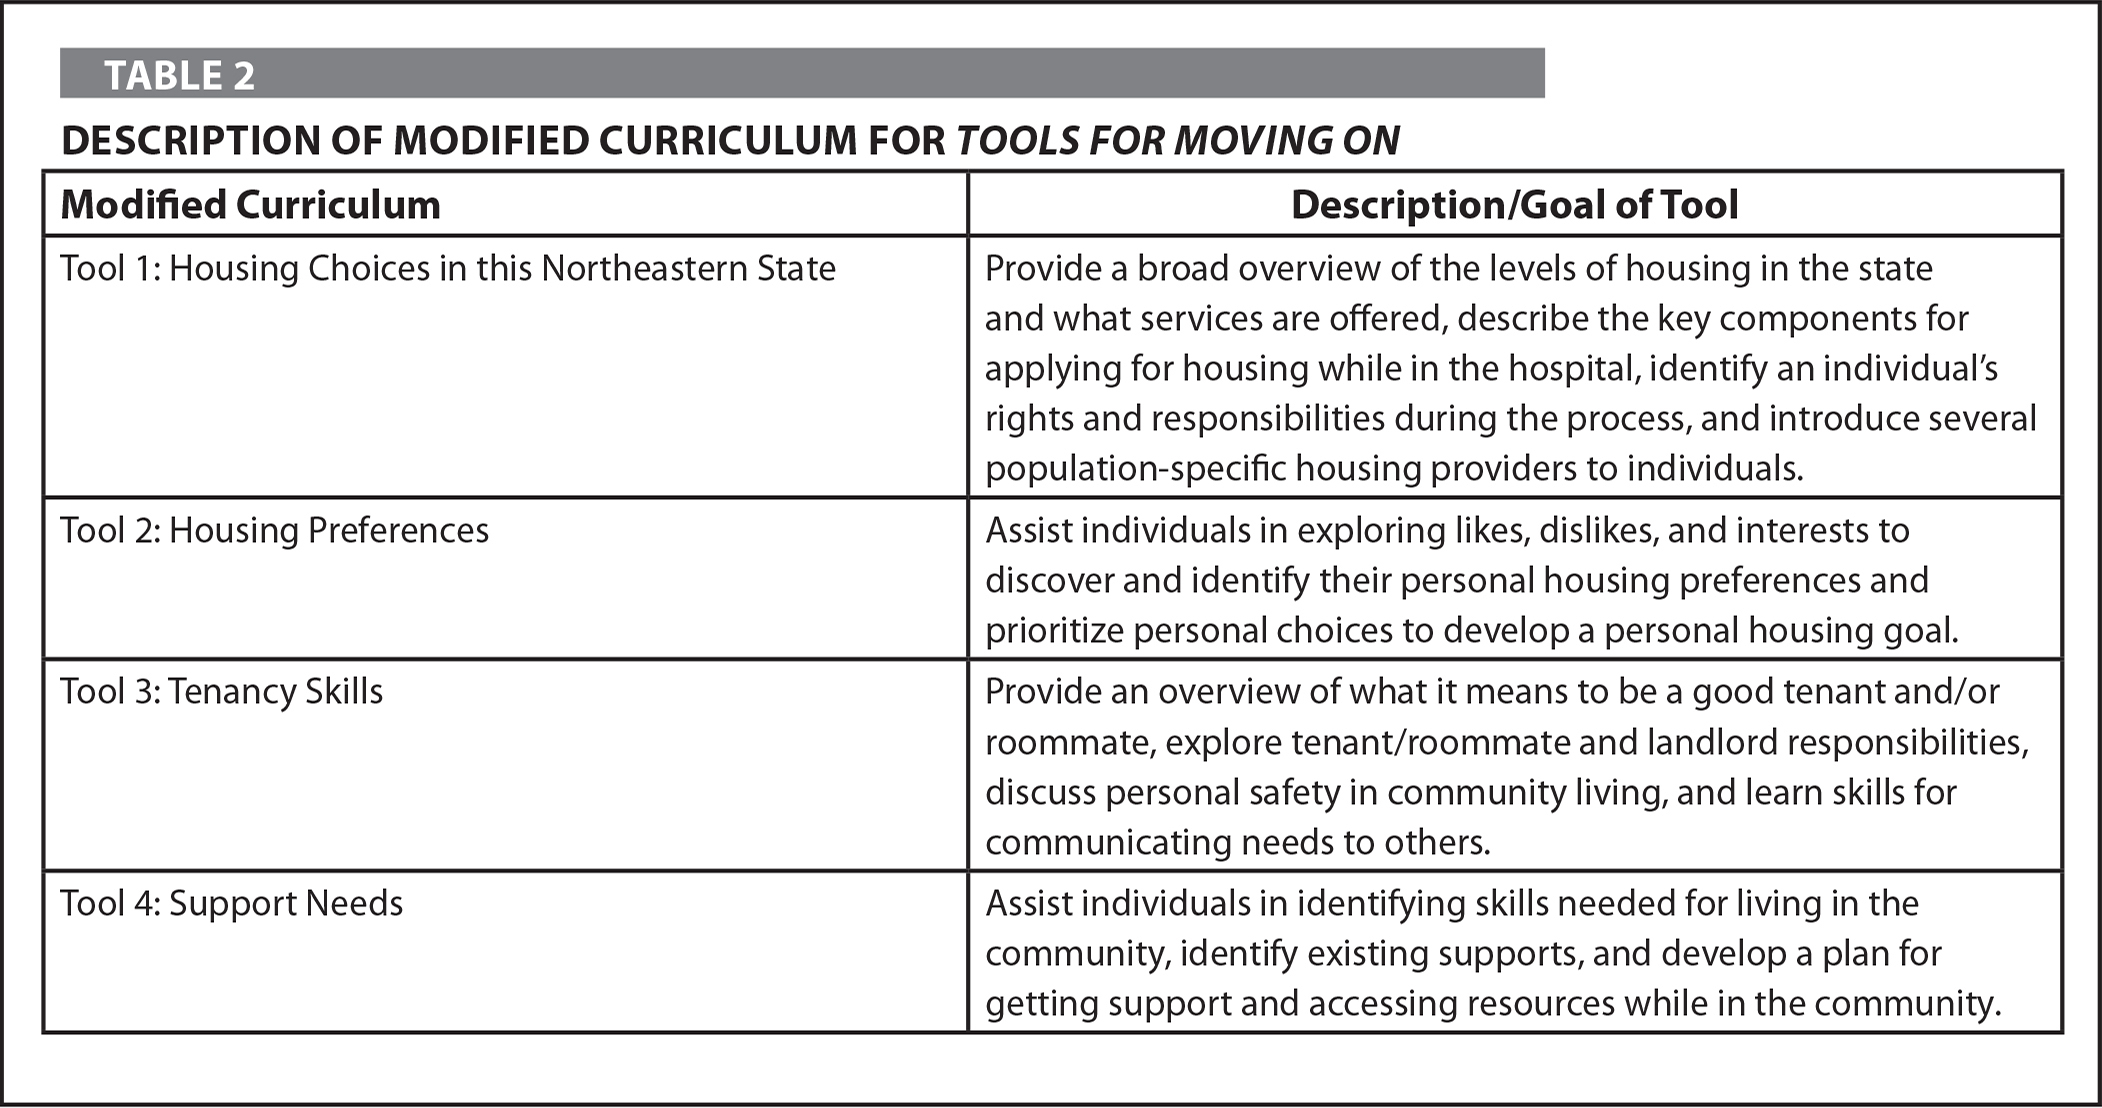 Description of Modified Curriculum for Tools for Moving on